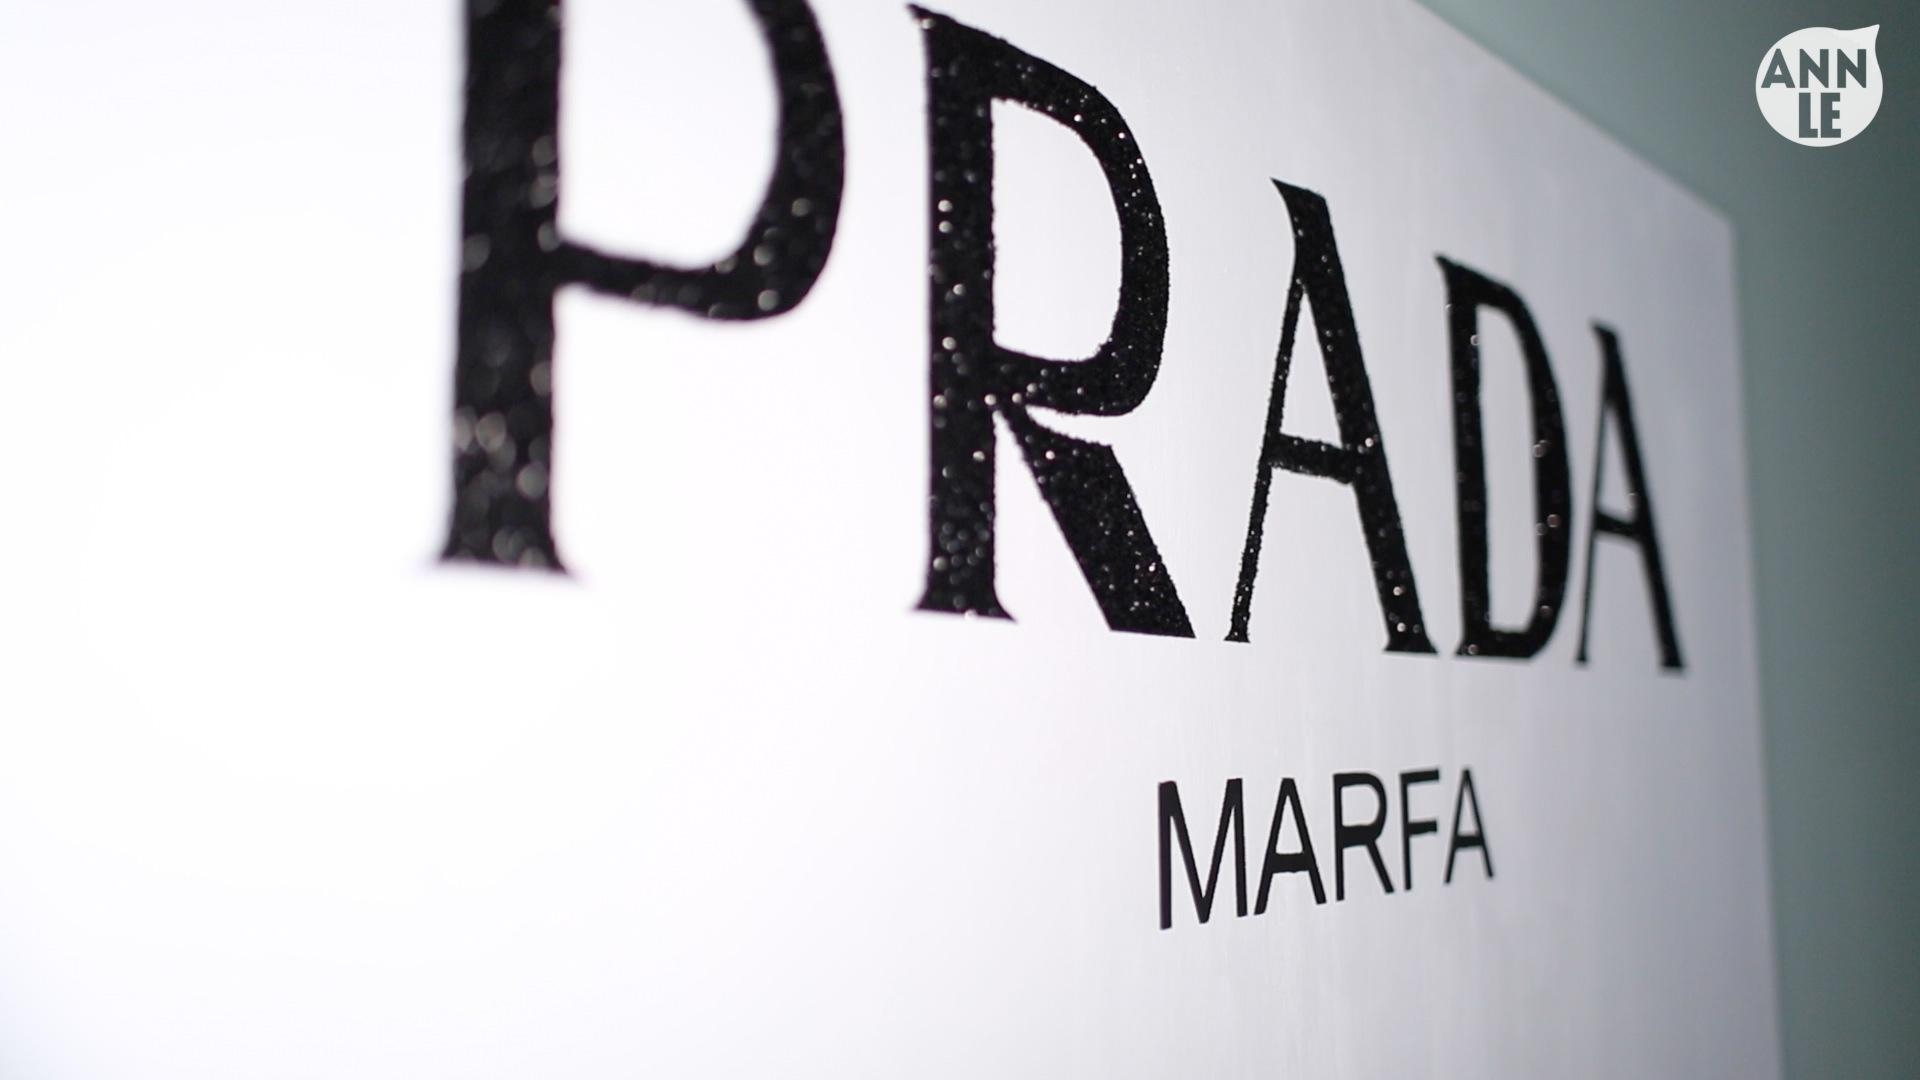 Gossip Girl Prada Wall Art – Ann Le Style With Regard To Prada Wall Art (Image 7 of 20)